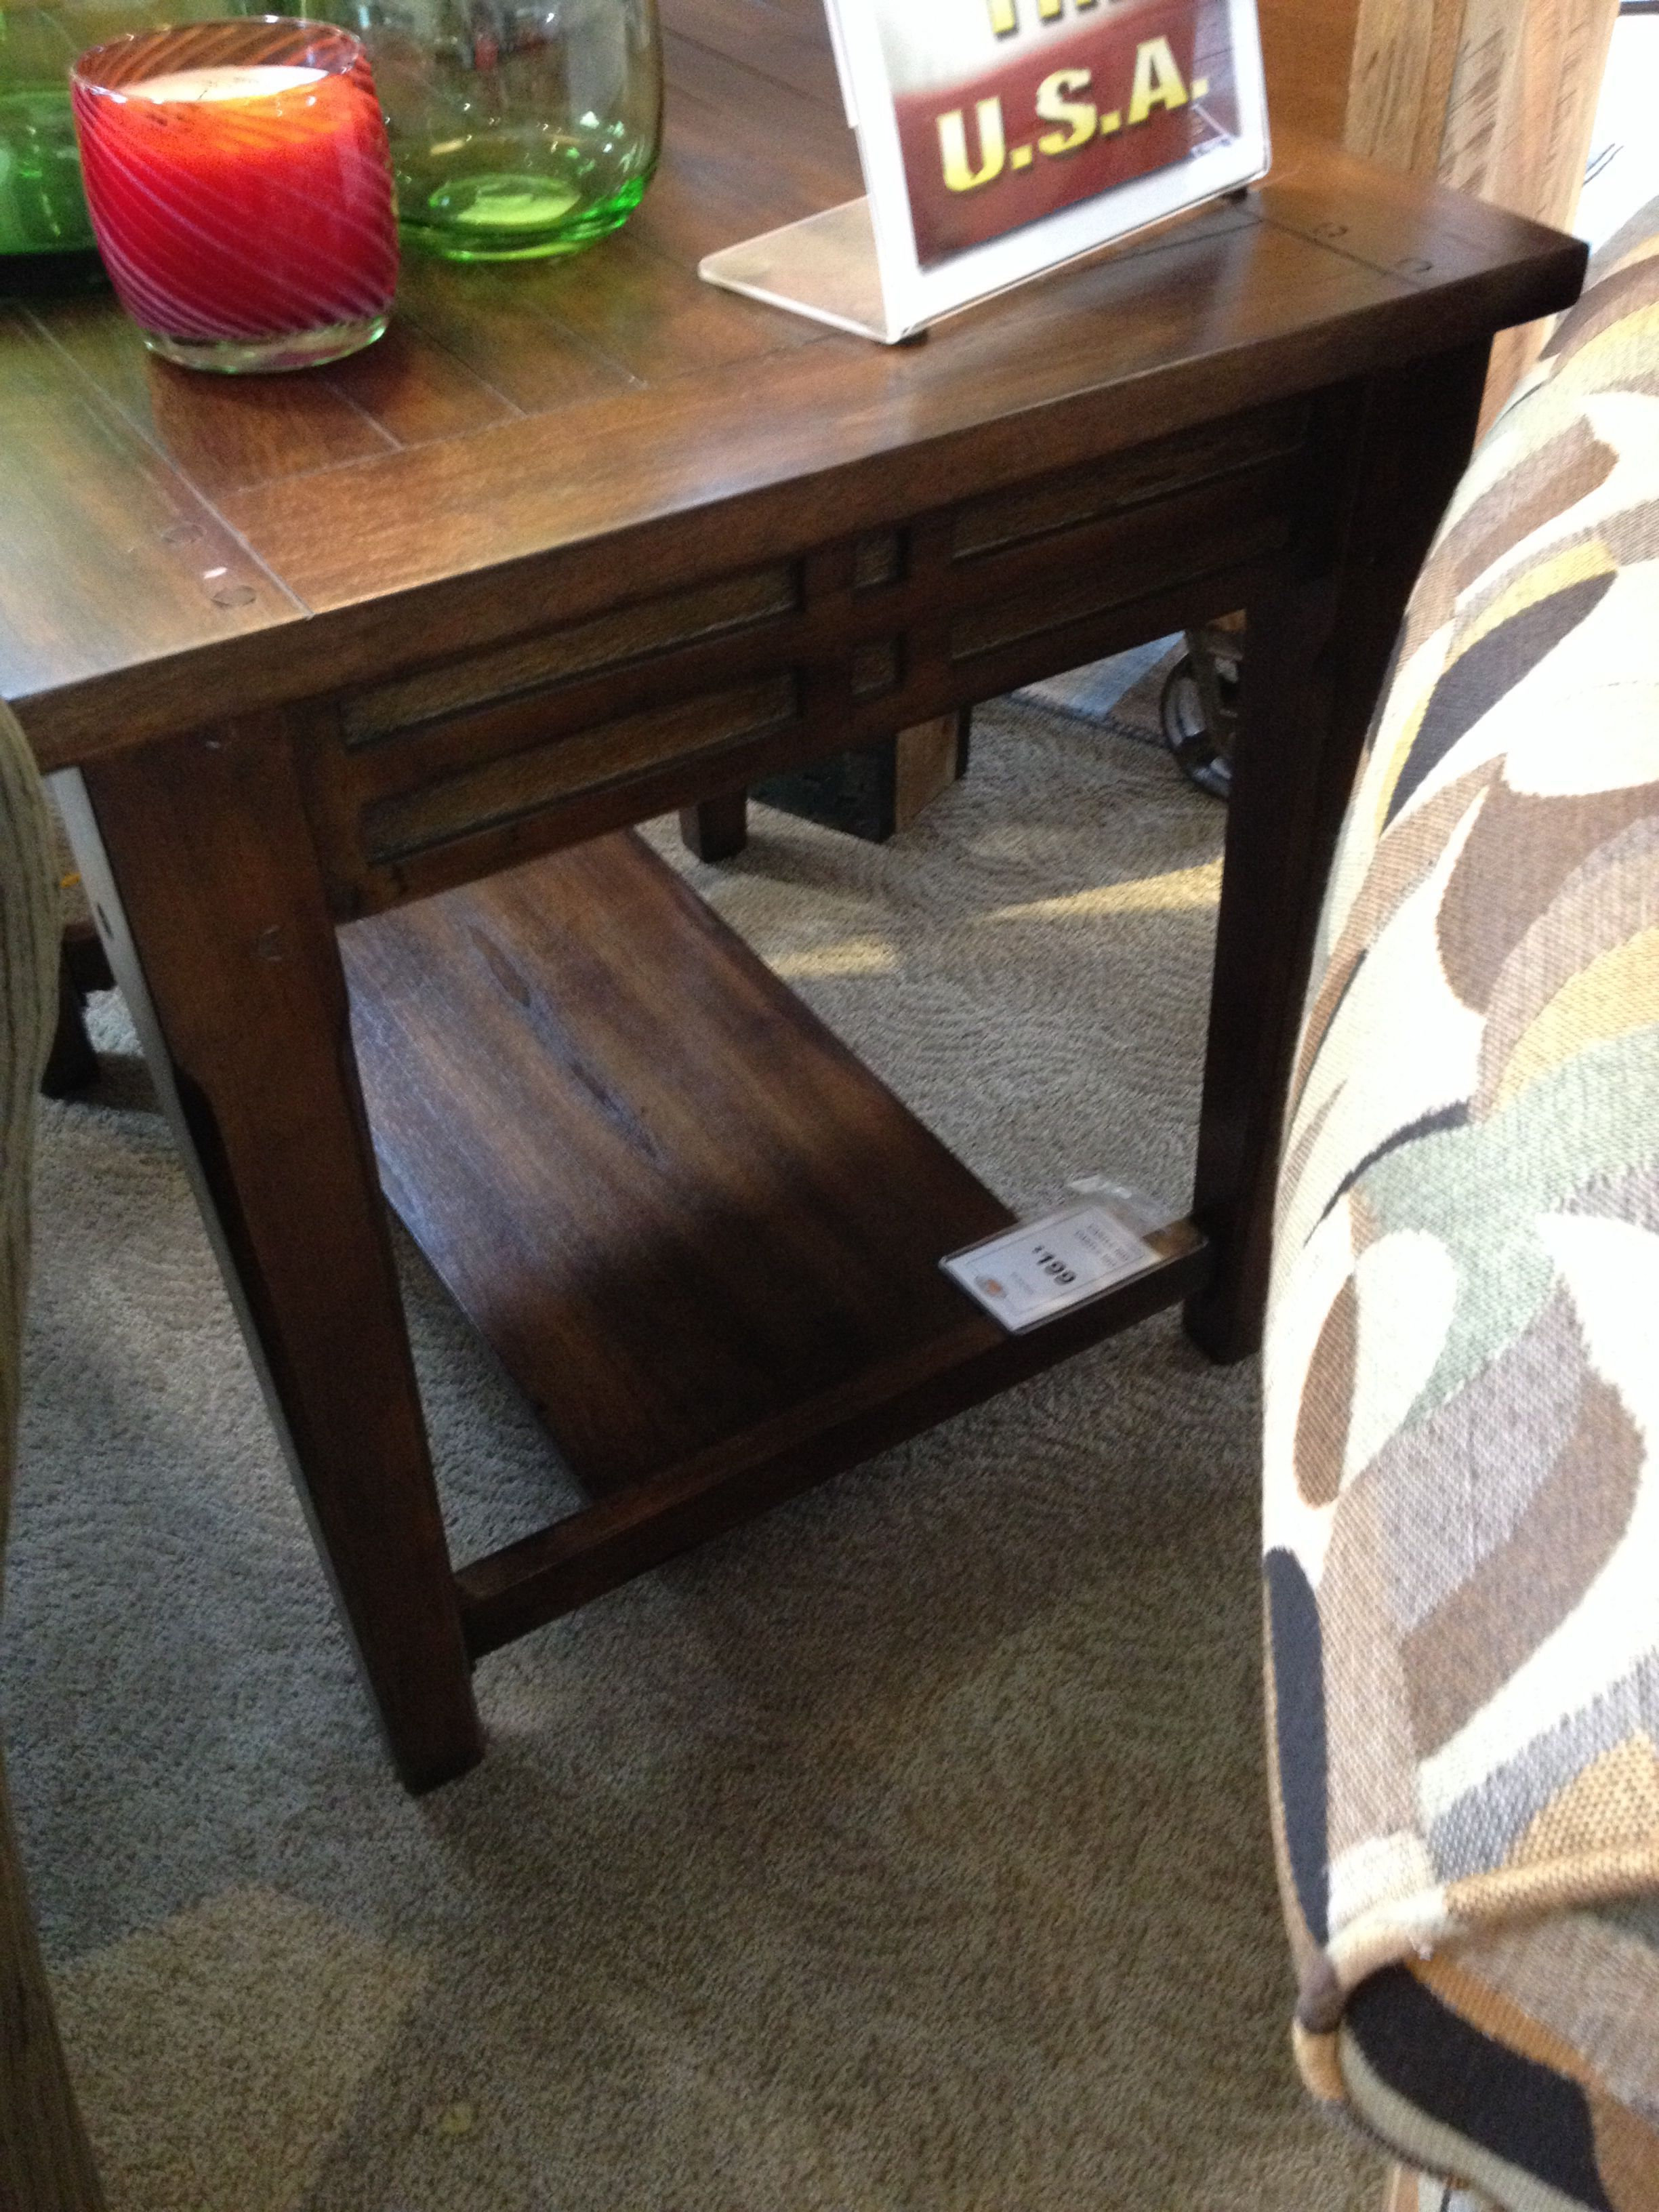 End Table E 199 Furniture Row Sofa Mart Rowe Furniture Furniture Entryway Tables